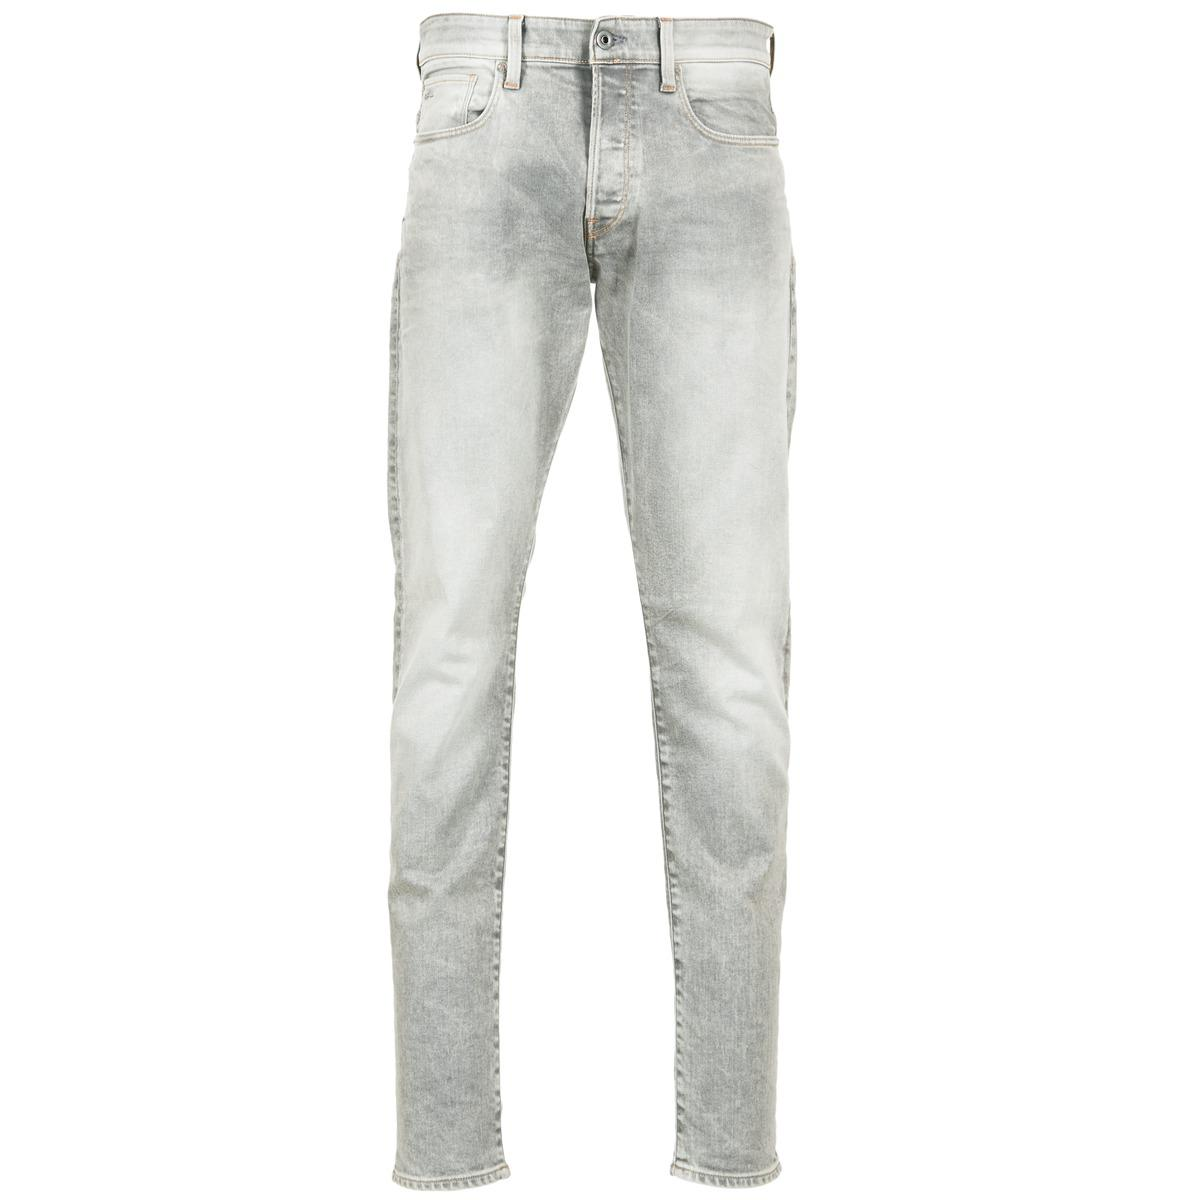 9c87cde4 G-Star RAW 3301 Tapered Men's Jeans In Grey in Gray for Men - Lyst